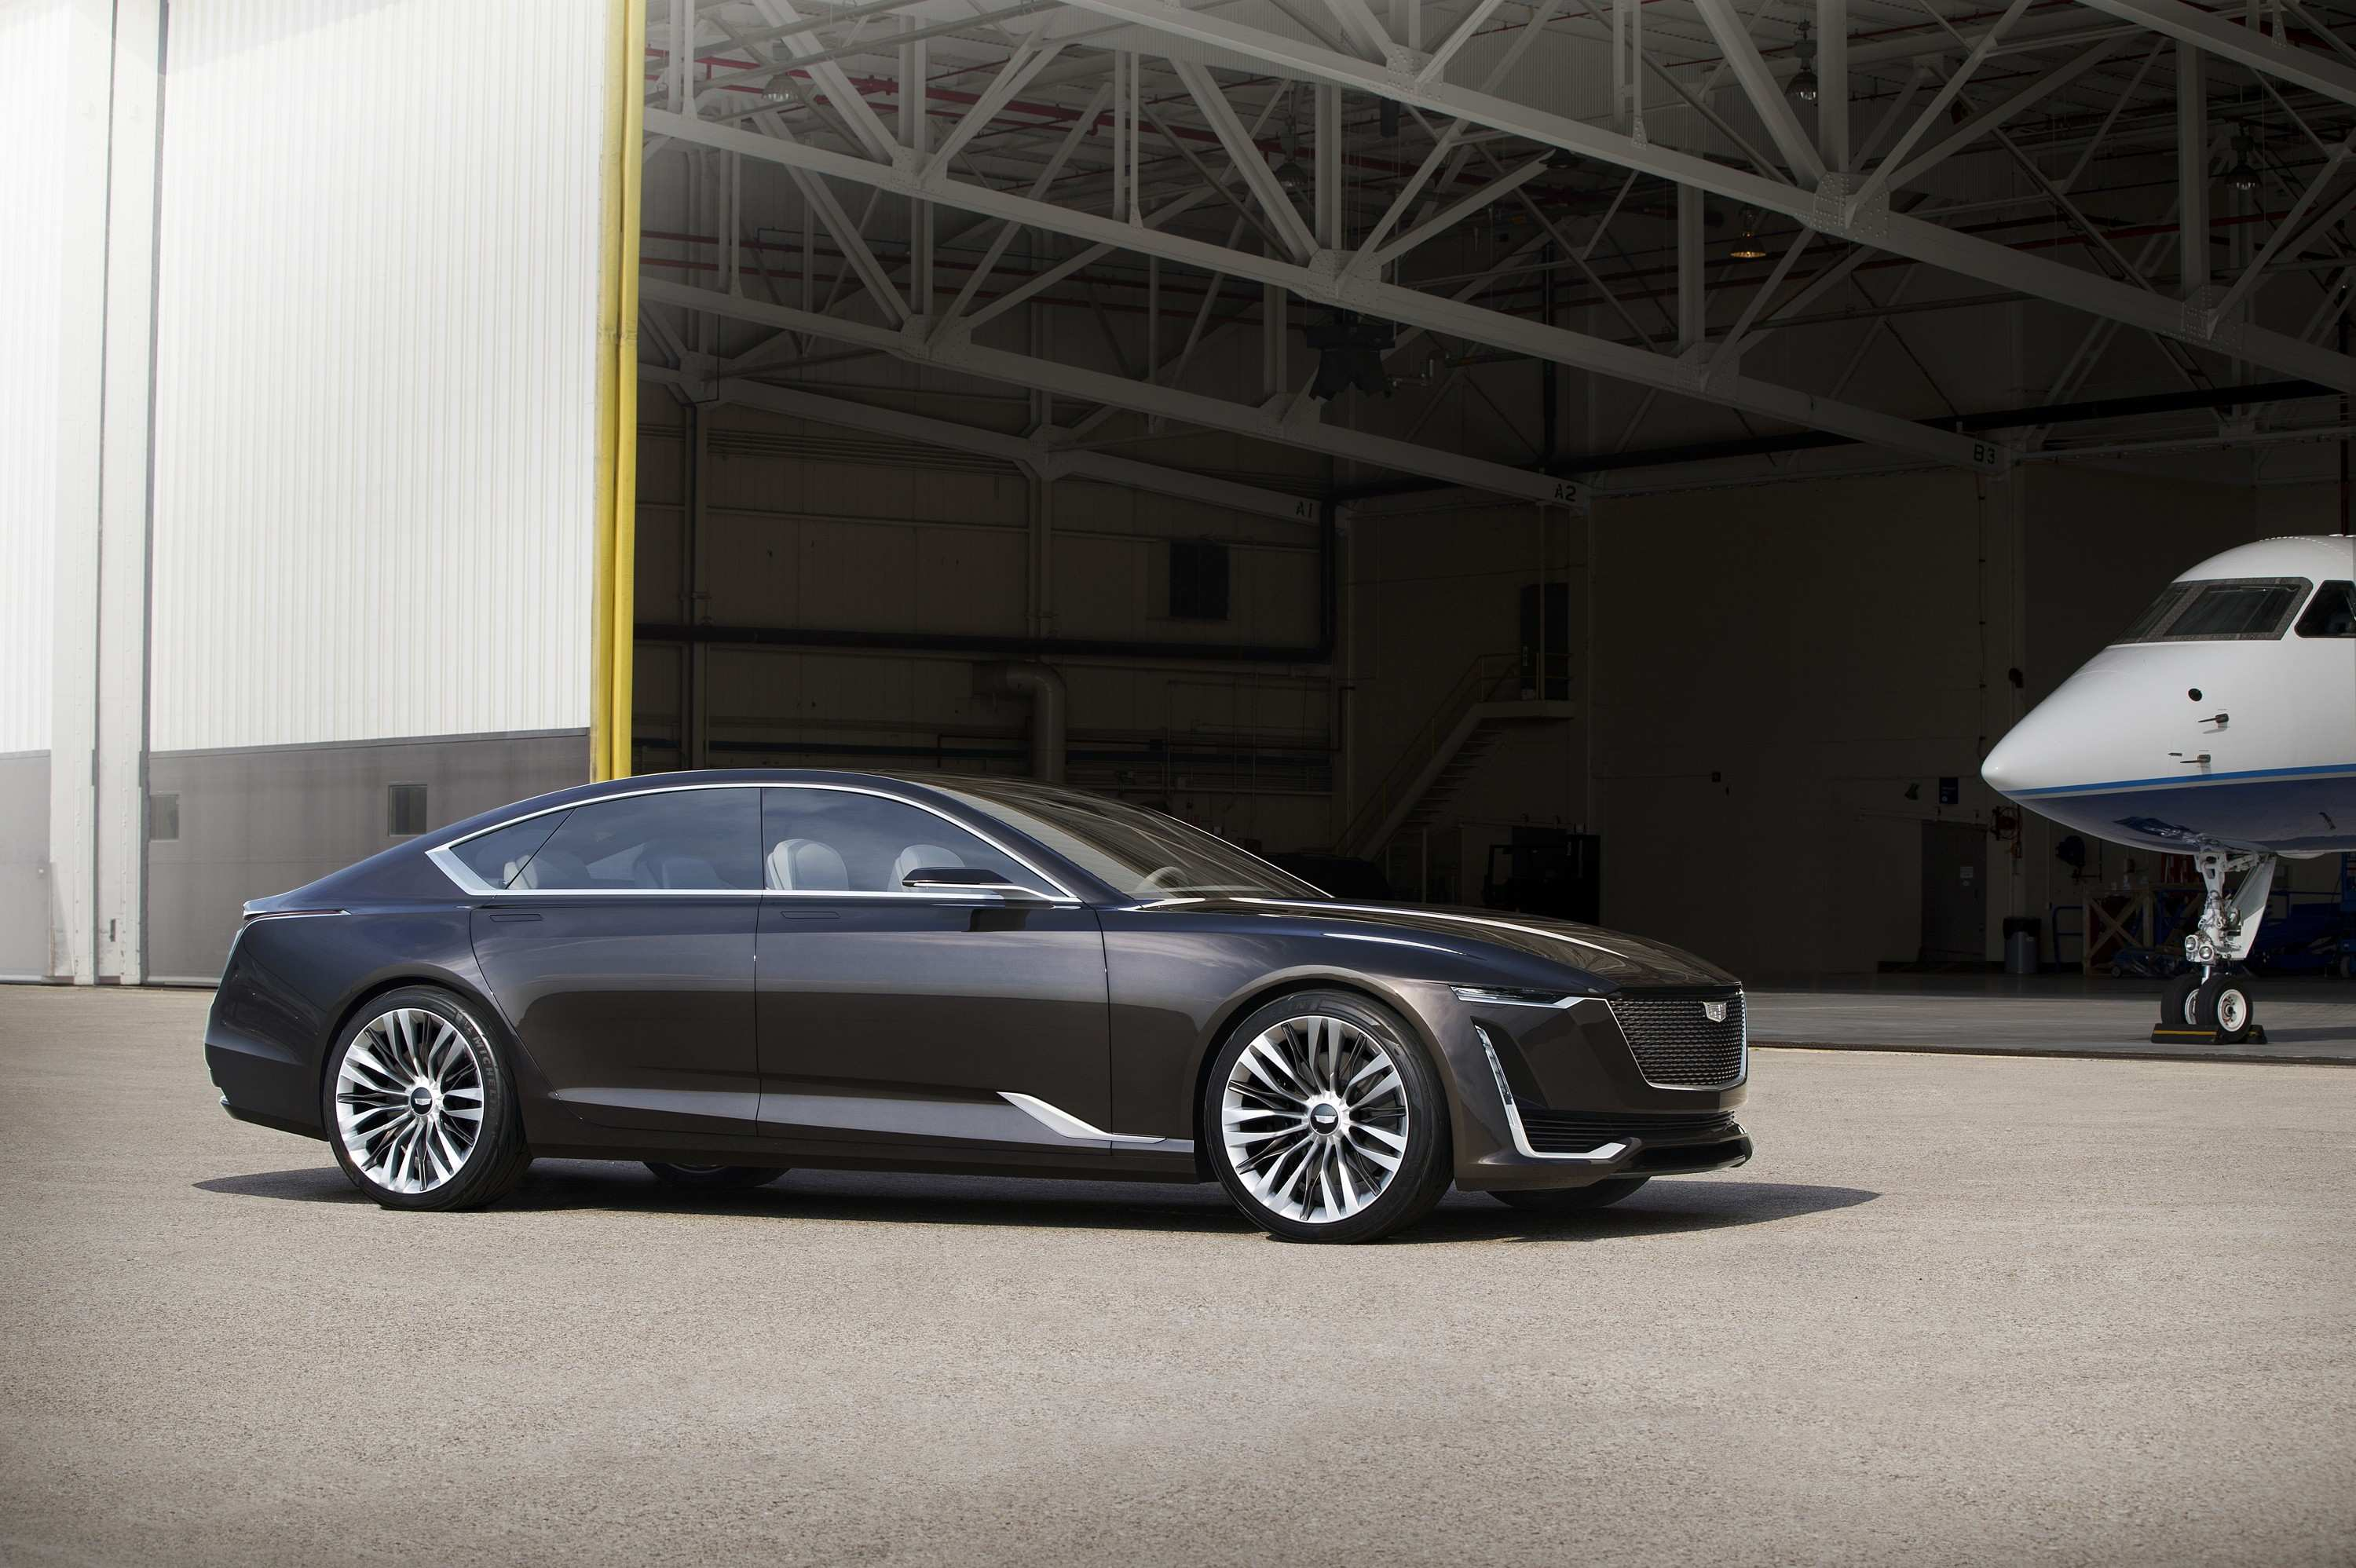 11 All New 2020 Cadillac Cts V Ratings by 2020 Cadillac Cts V